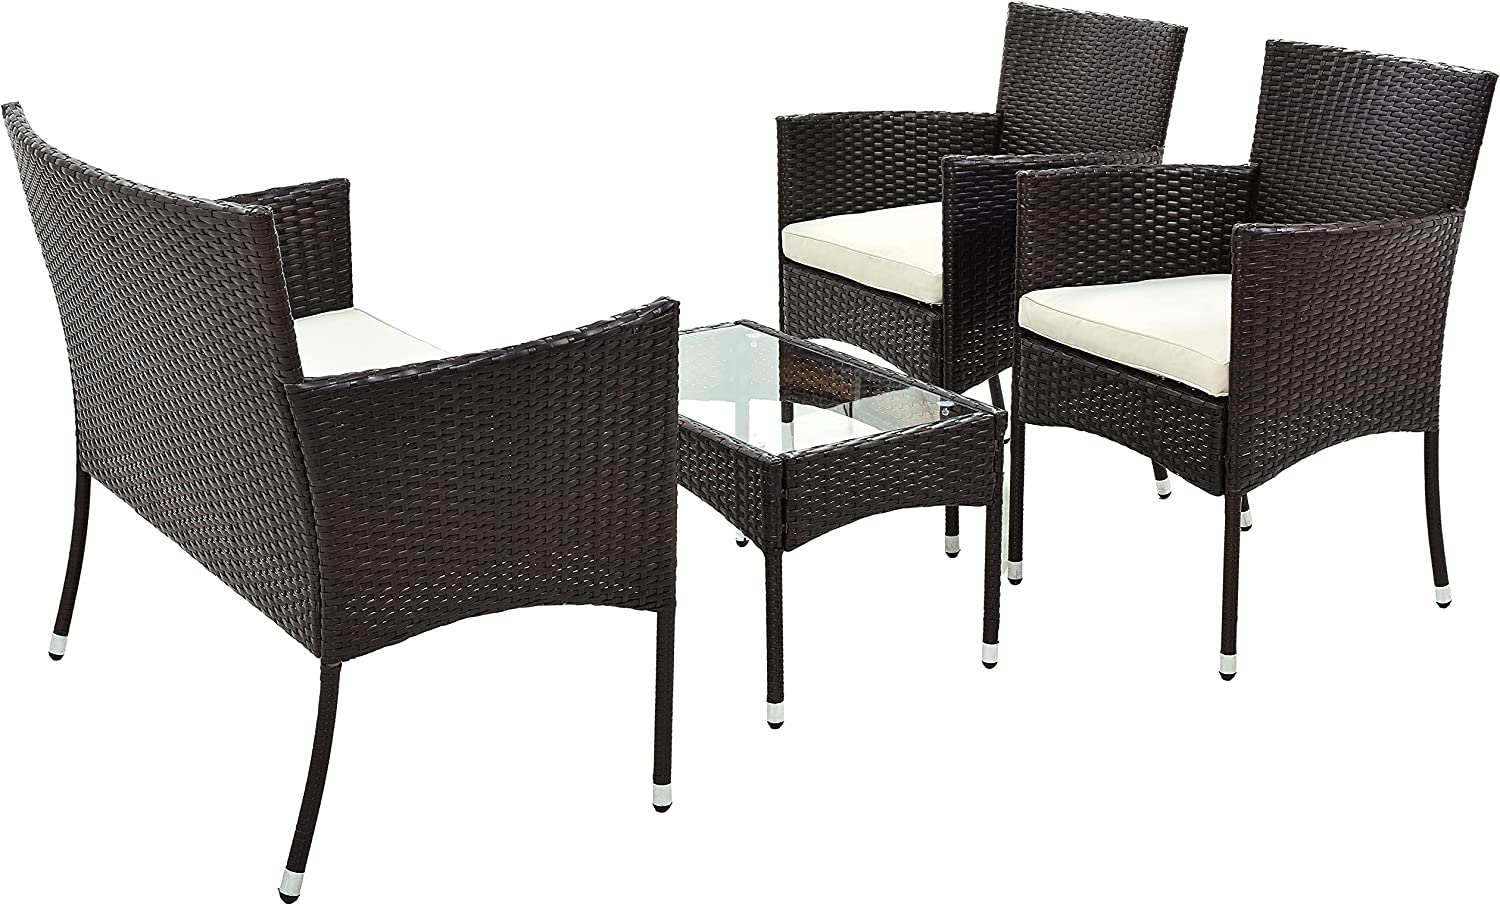 LASBAK 4 Pieces Outdoor Patio Rattan Set Sectional Super intense SALE Now free shipping Sof Furniture